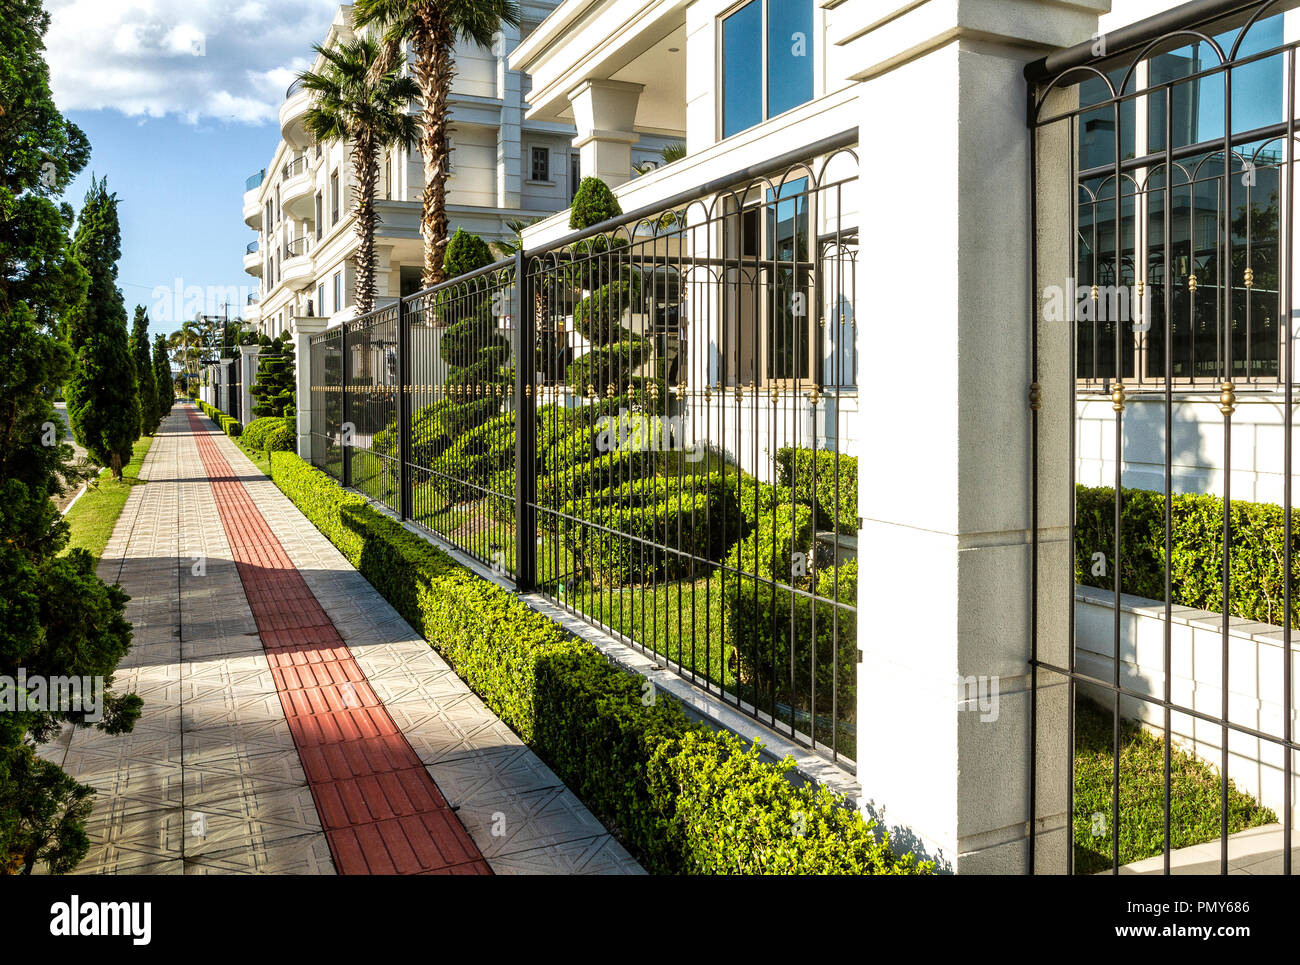 Sidewalk in the wealthy neighborhood of Jurere Internacional. Florianopolis, Santa Catarina, Brazil. - Stock Image